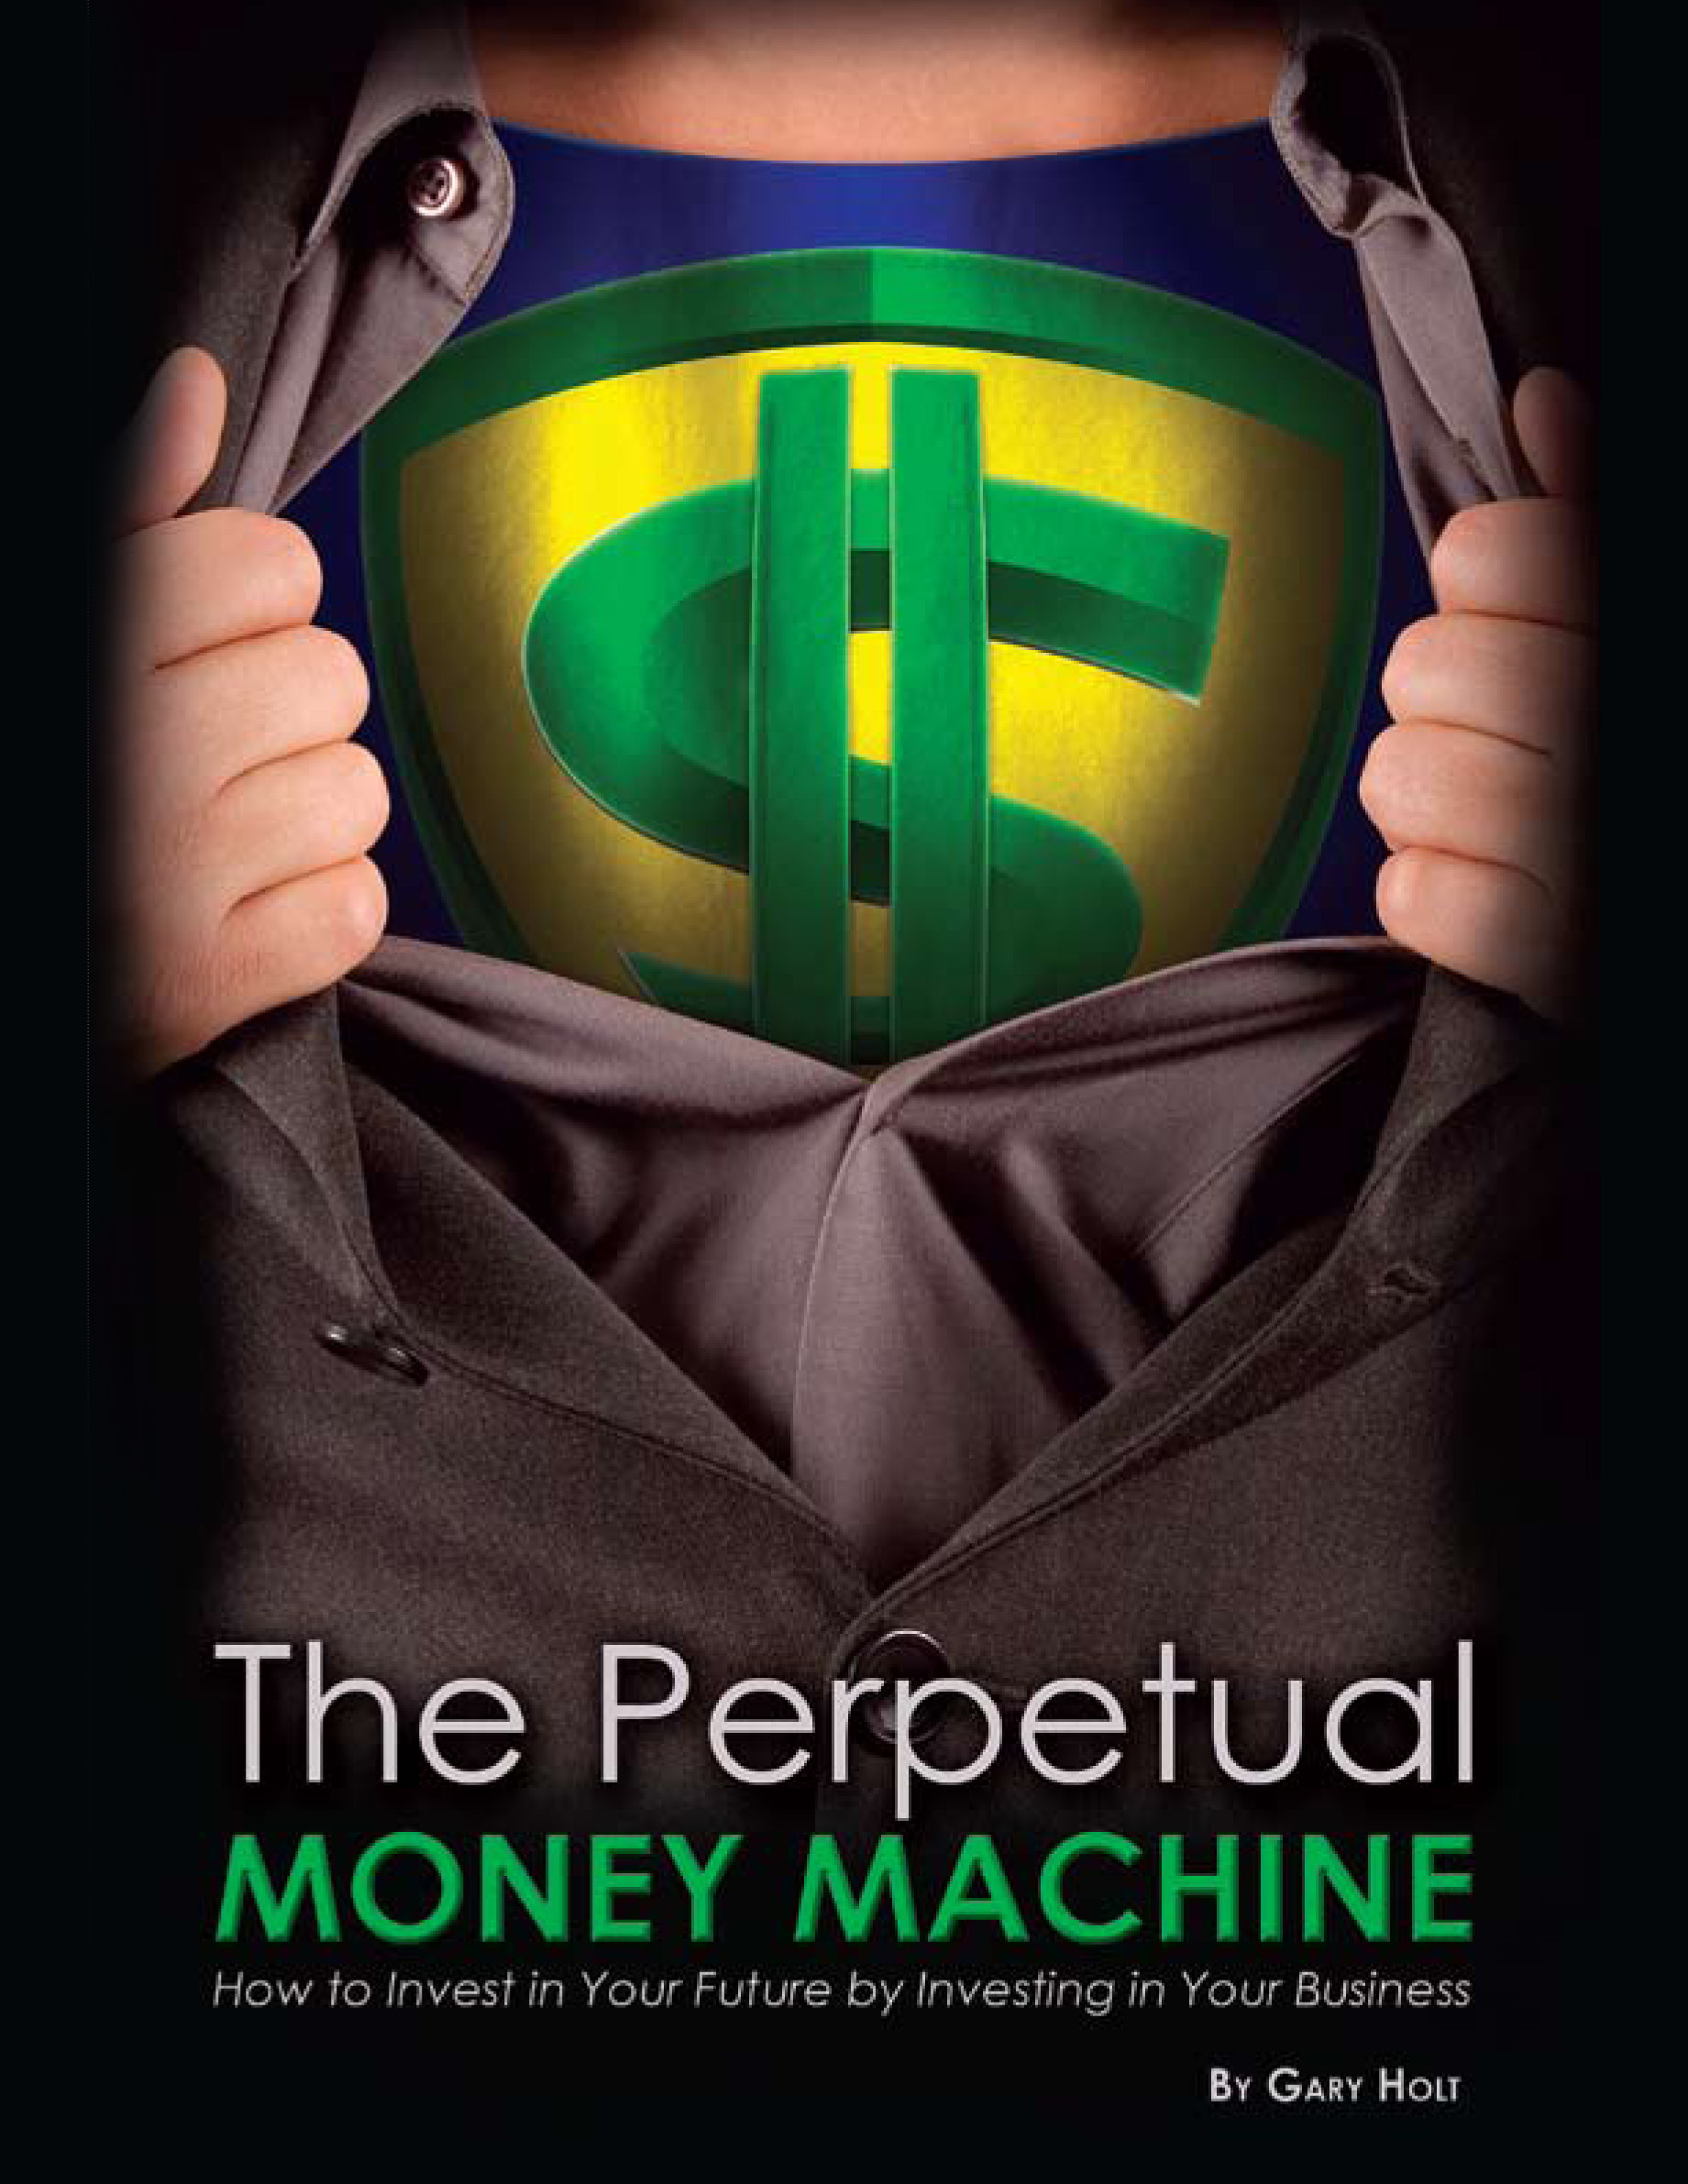 Perpetual Money Machine